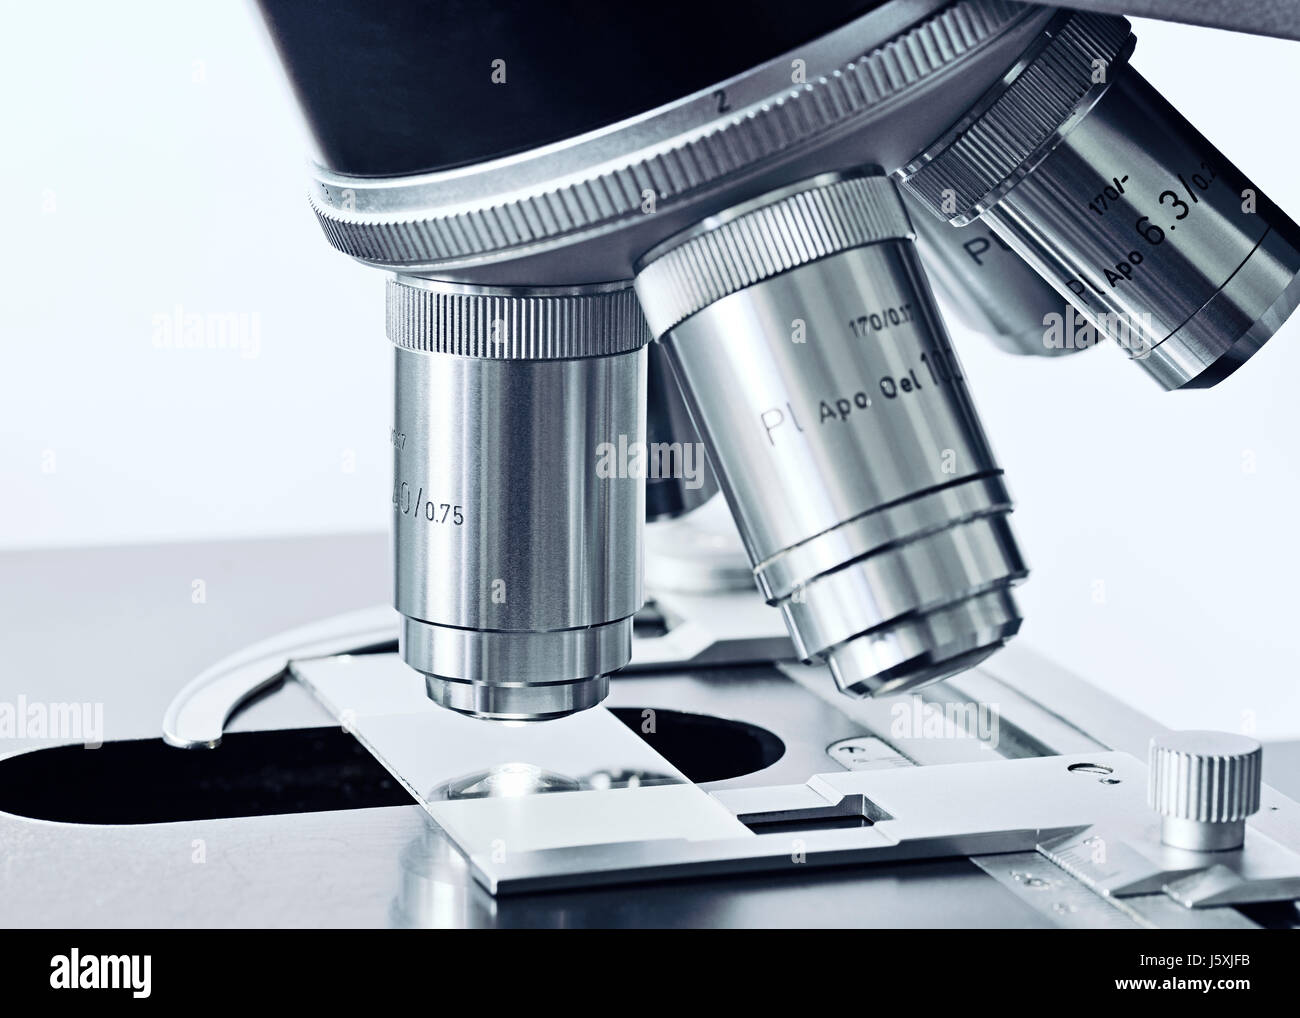 Microscope, Close Up. - Stock Image